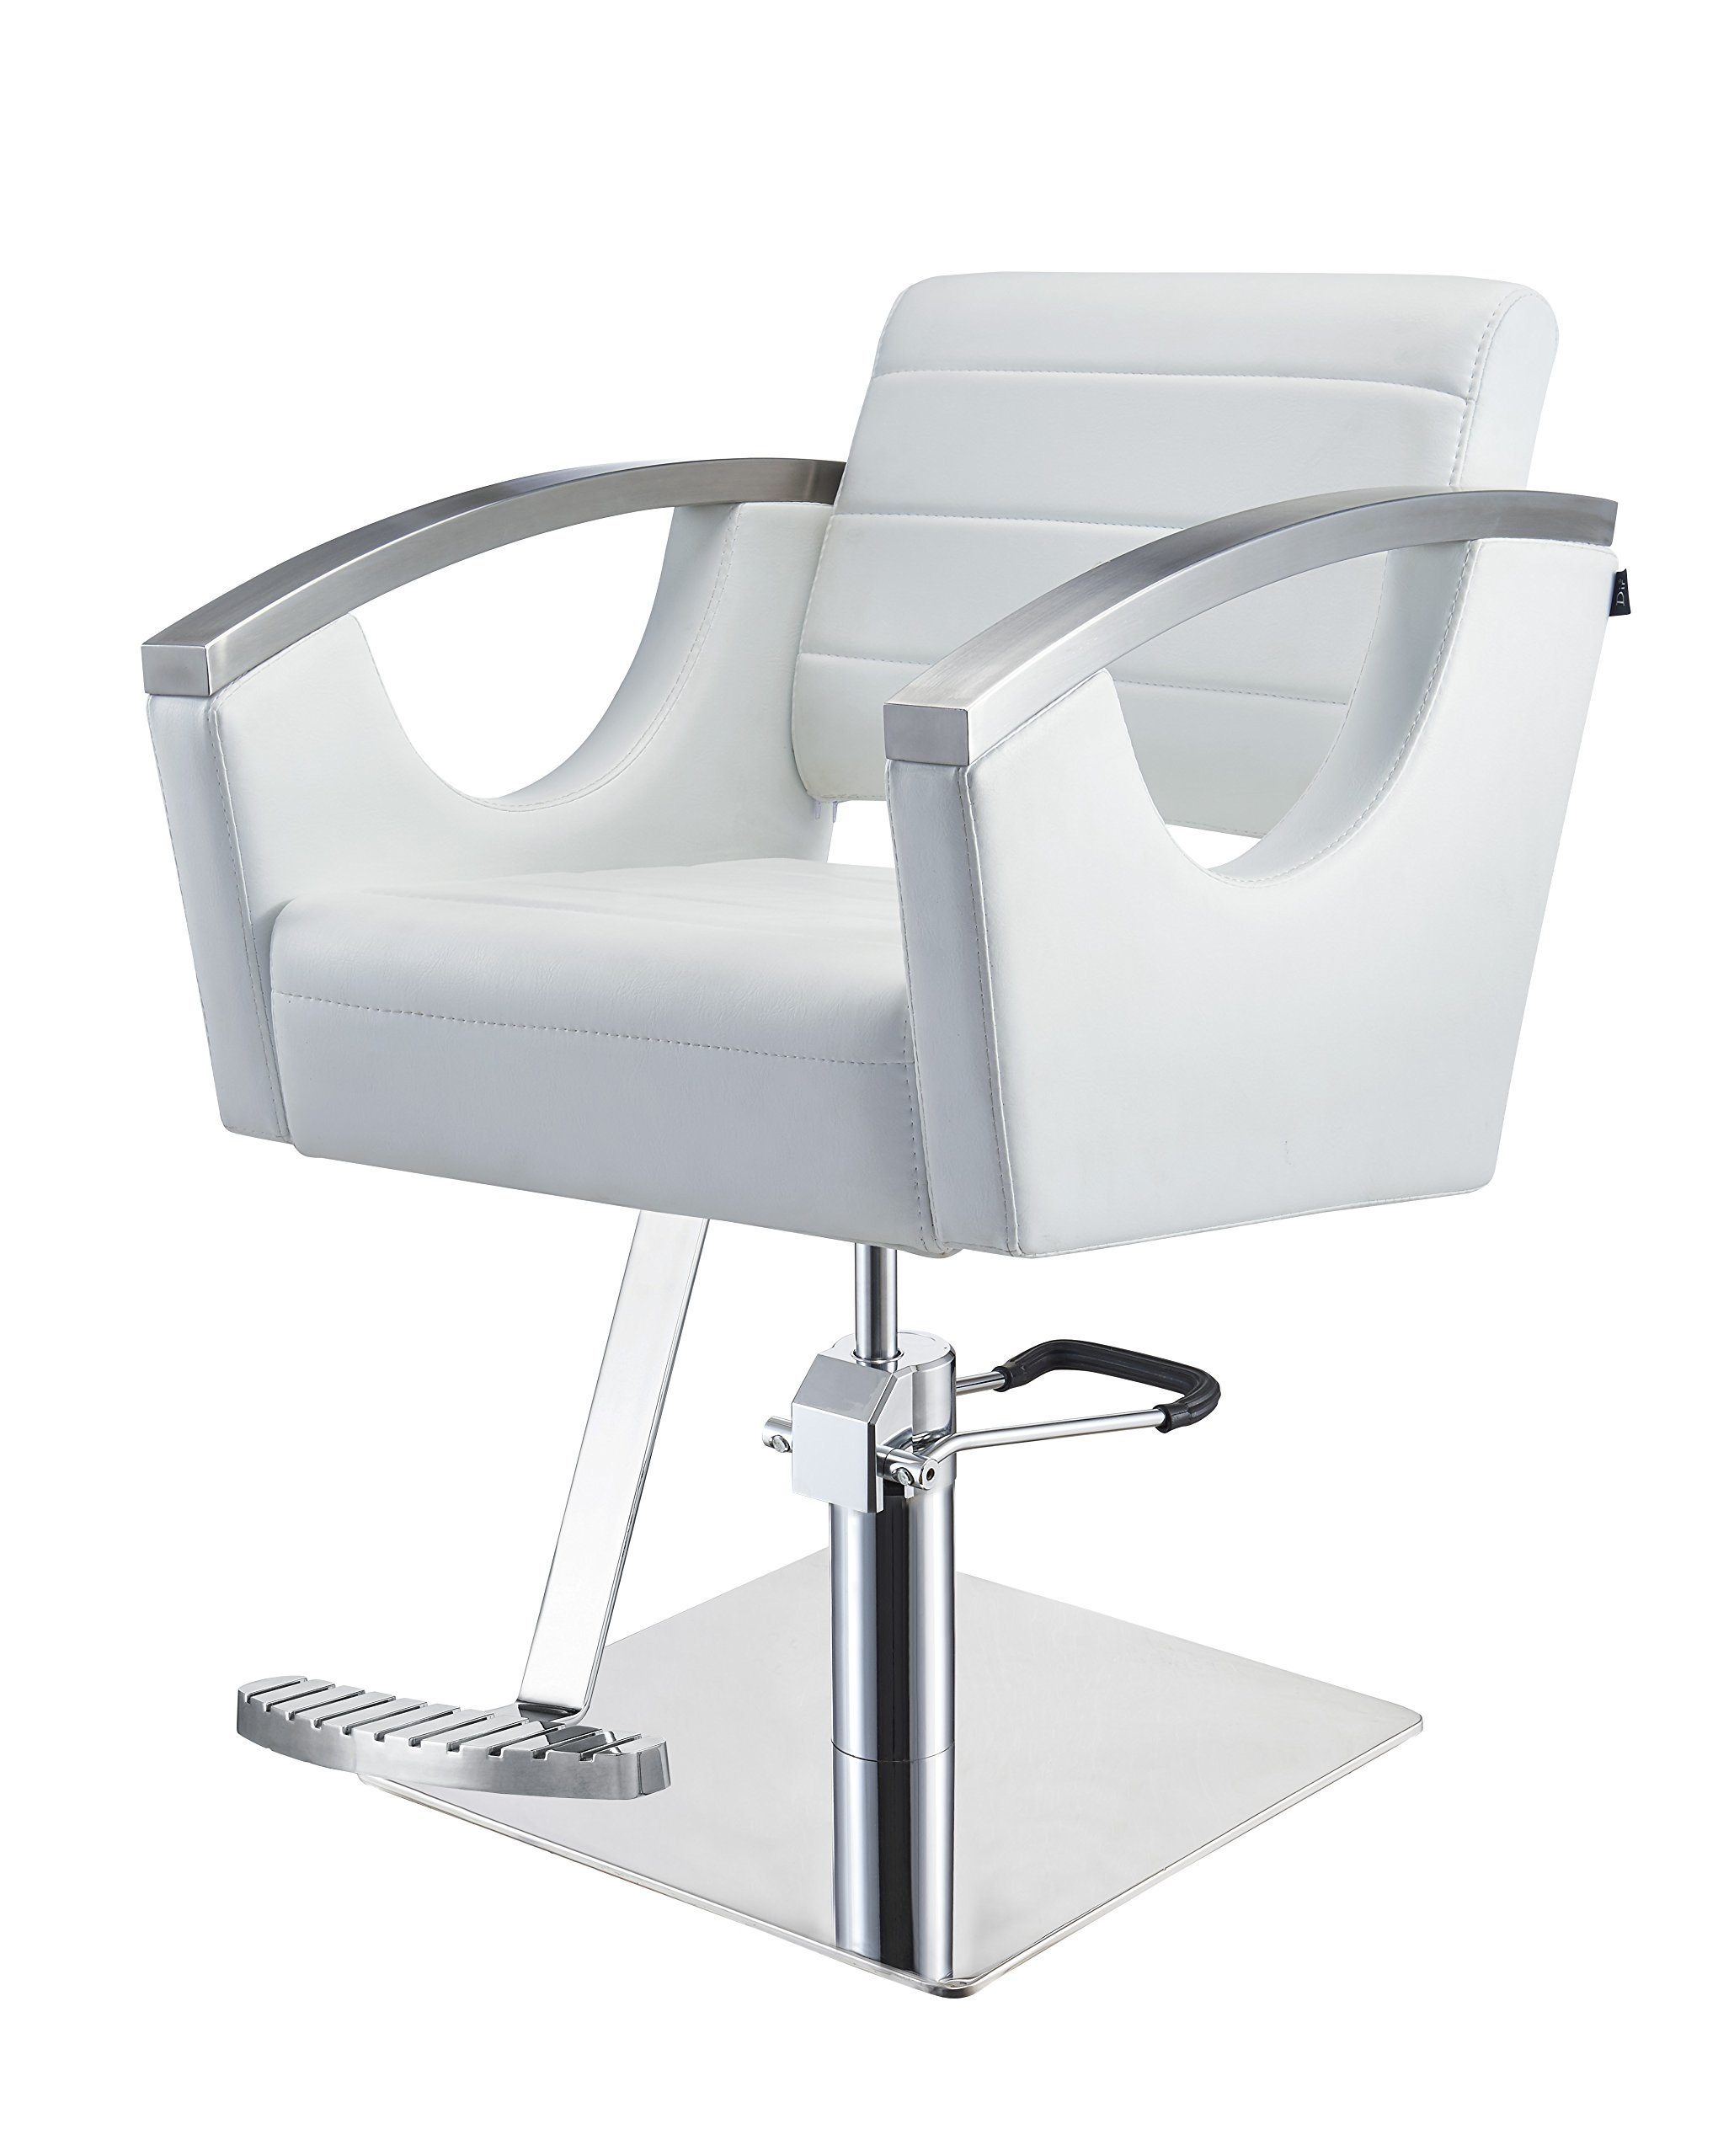 BEAUTY SALON STYLING CHAIR EUROPEAN DESIGN SALON HYDRAULIC BEAUTY CHAIR - BELLO-W